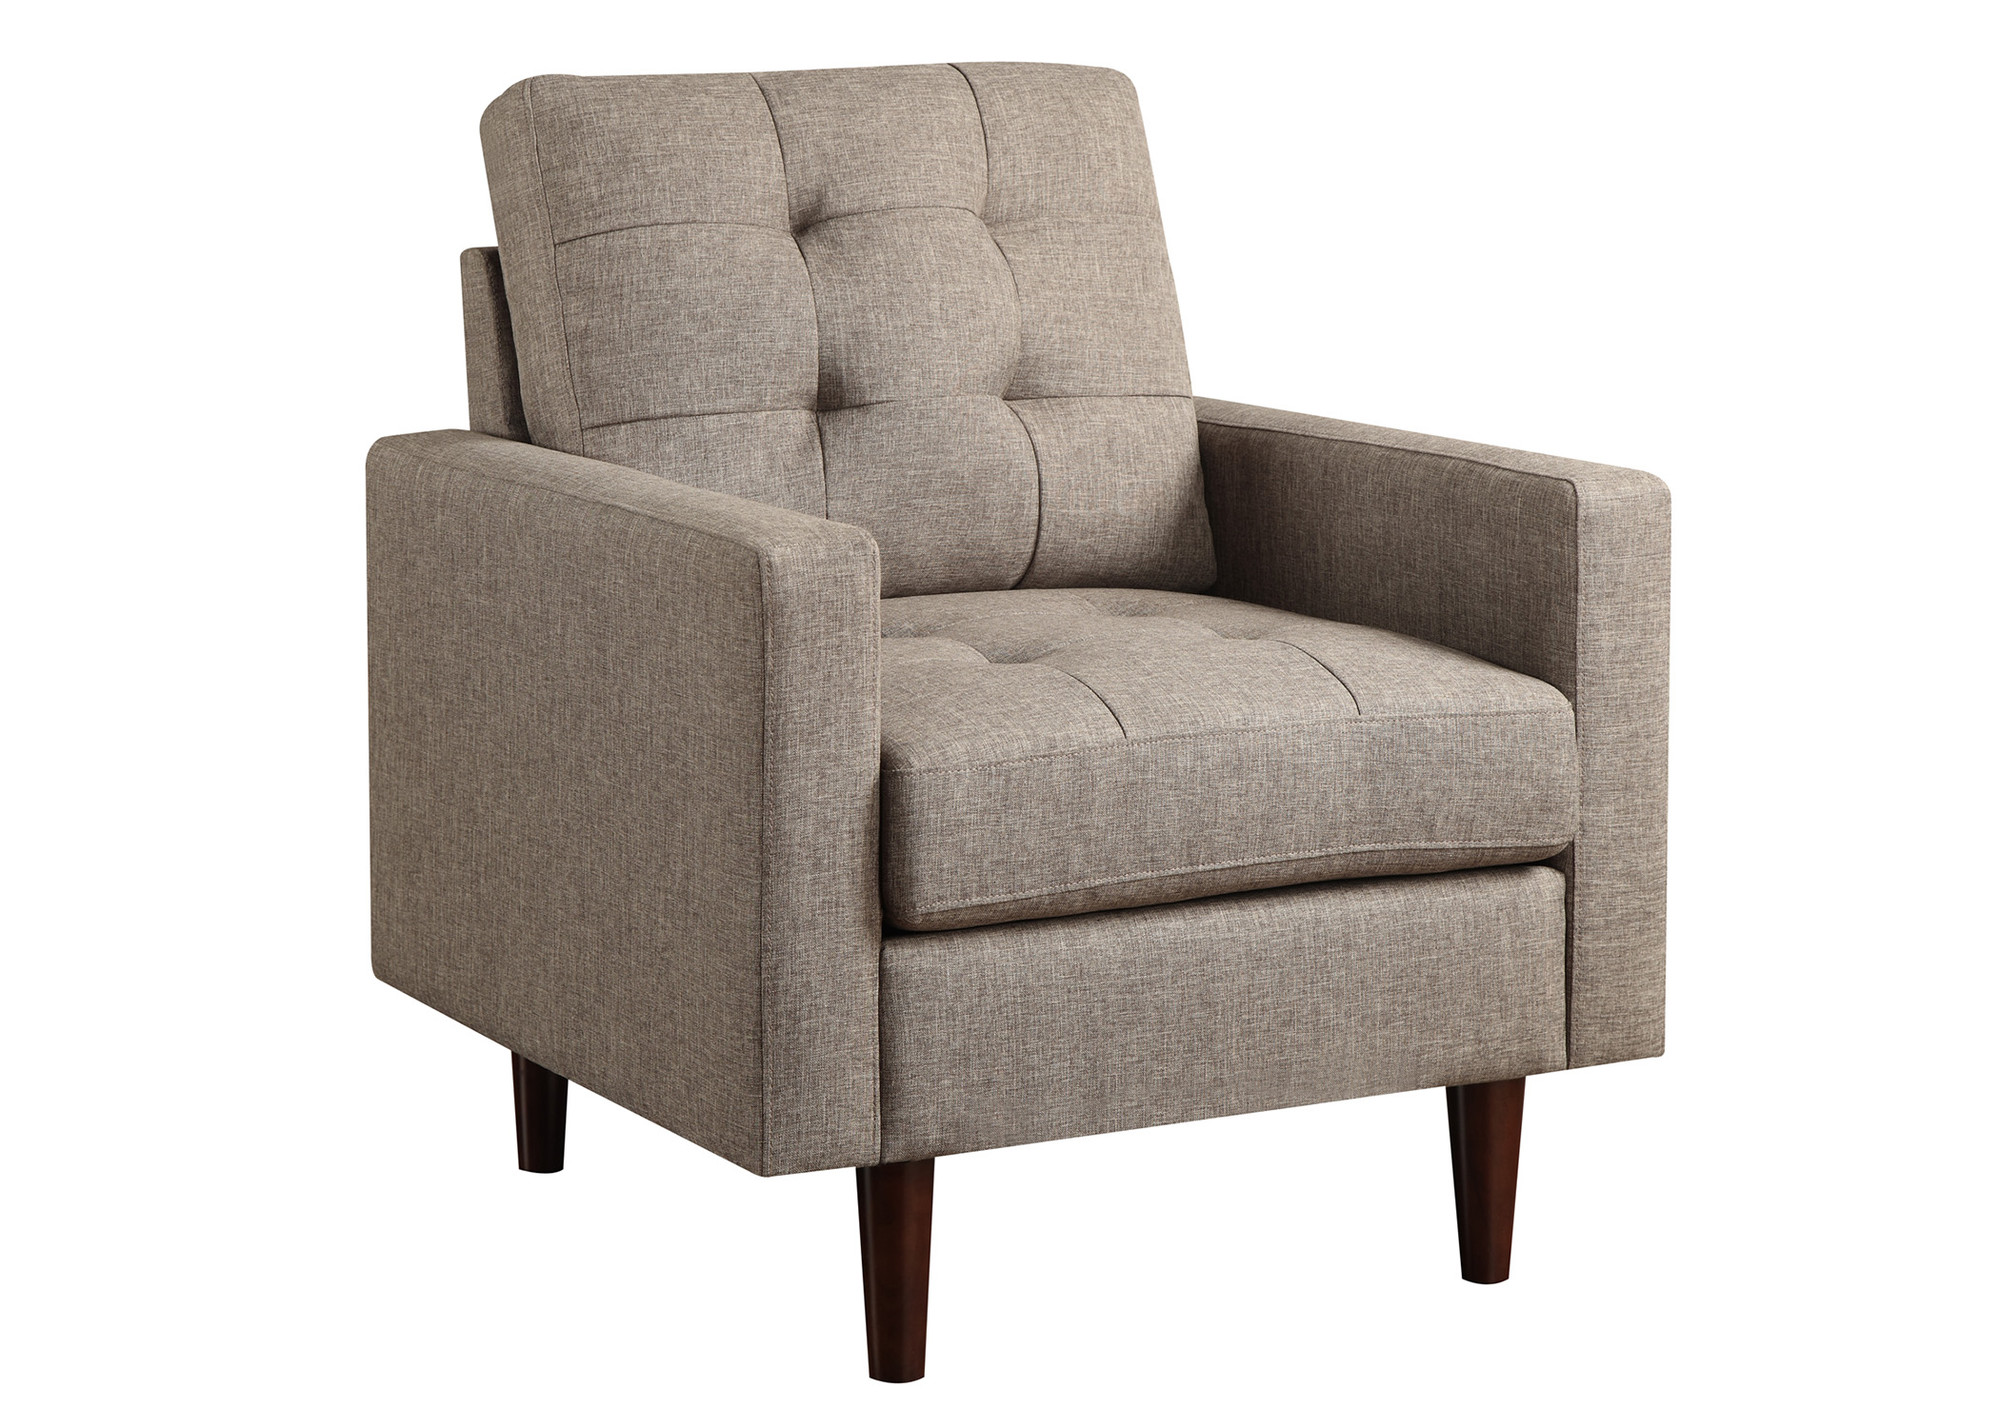 Decor Look Alikes | All Modern Stacey Armchair